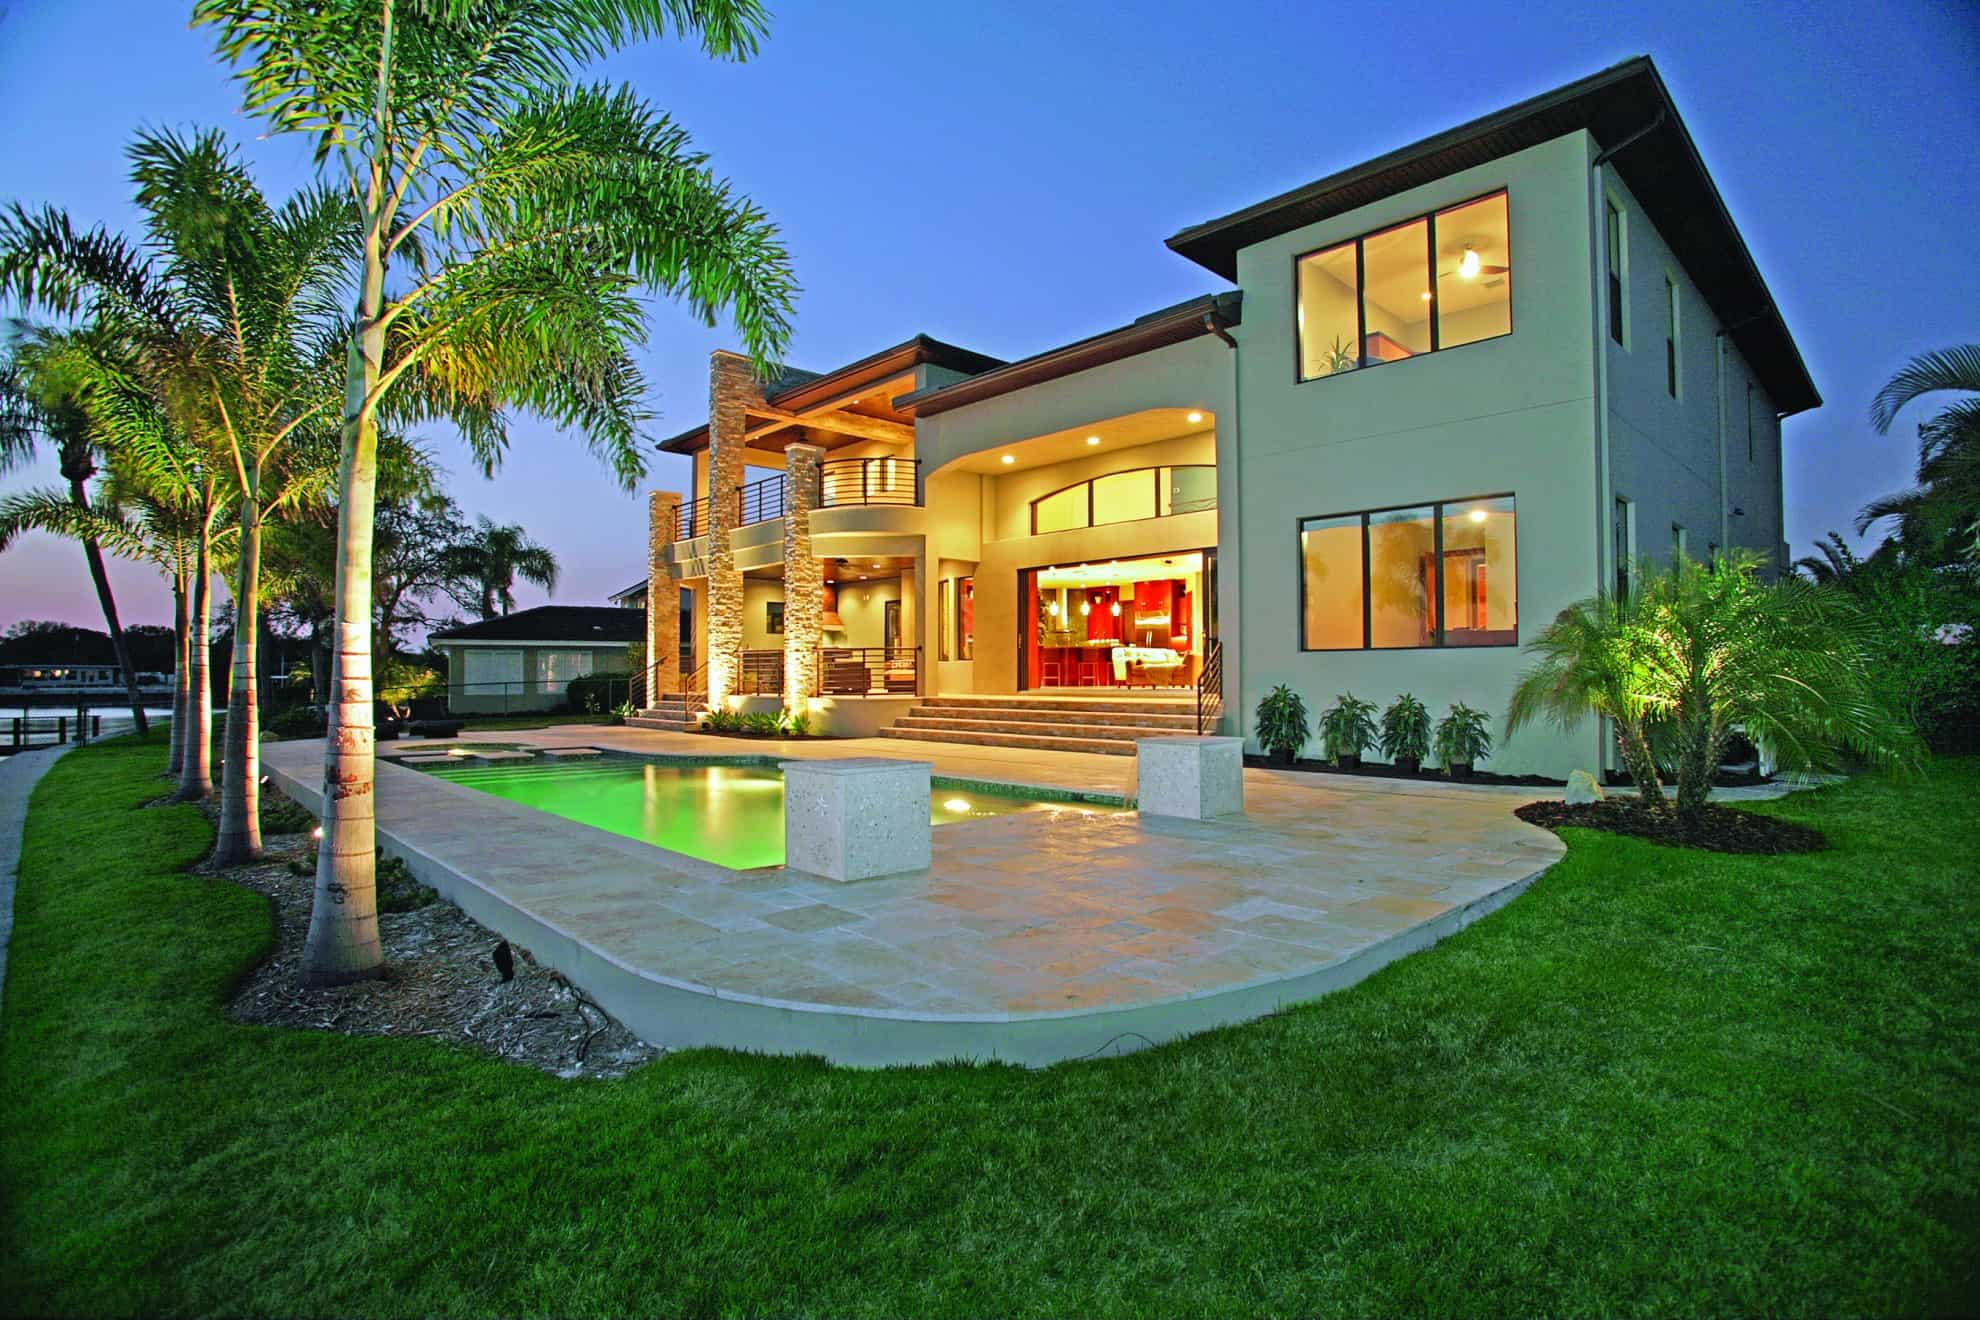 Tampa Bay New Home Builders